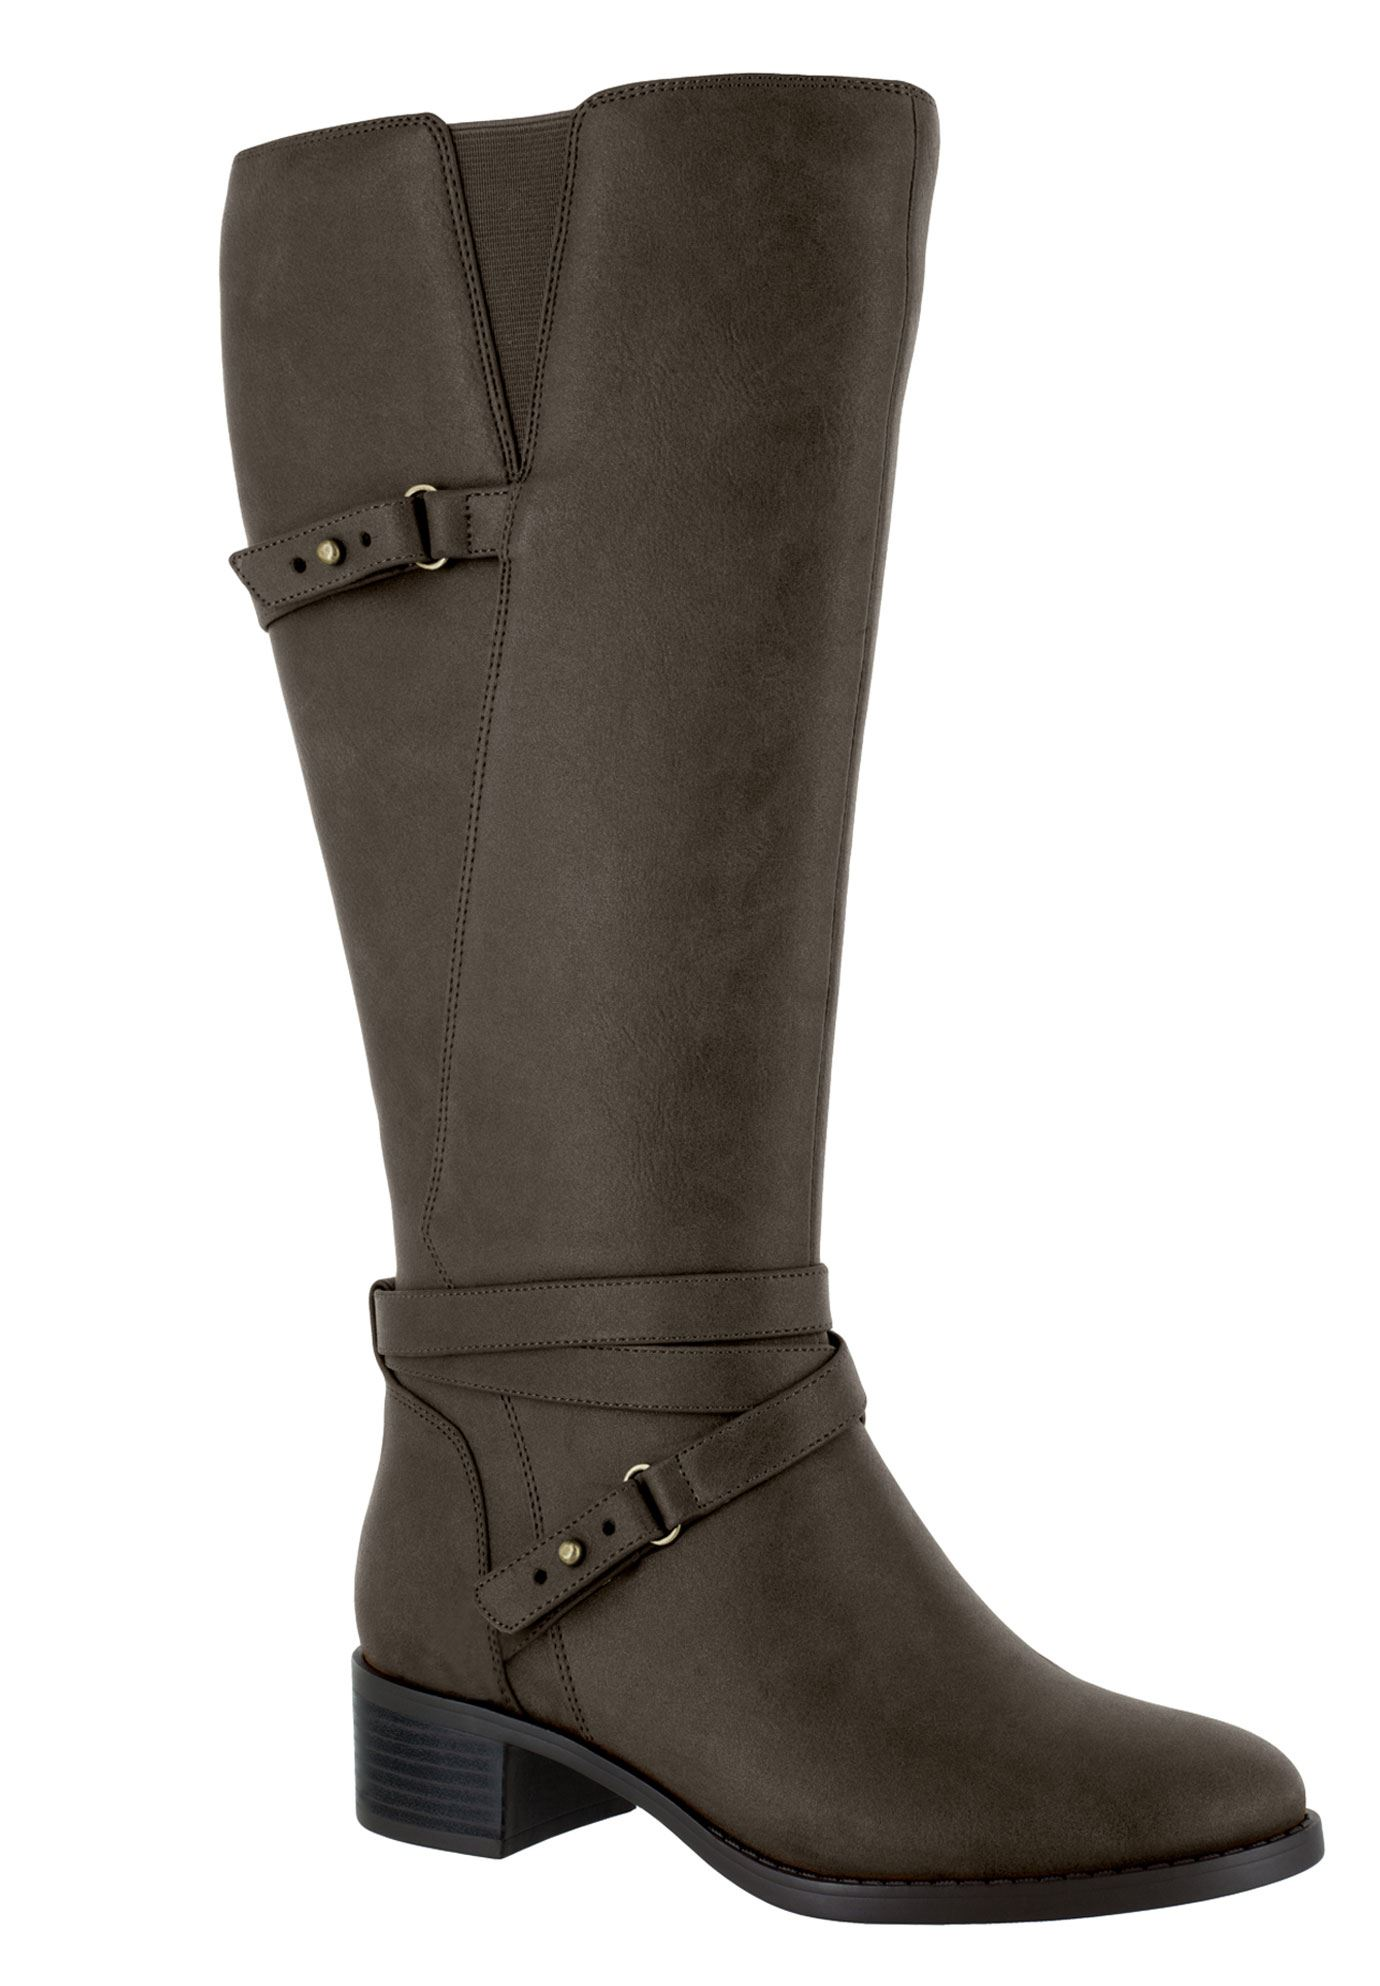 Clarita Plus Wide Calf Boots by Easy Street®,